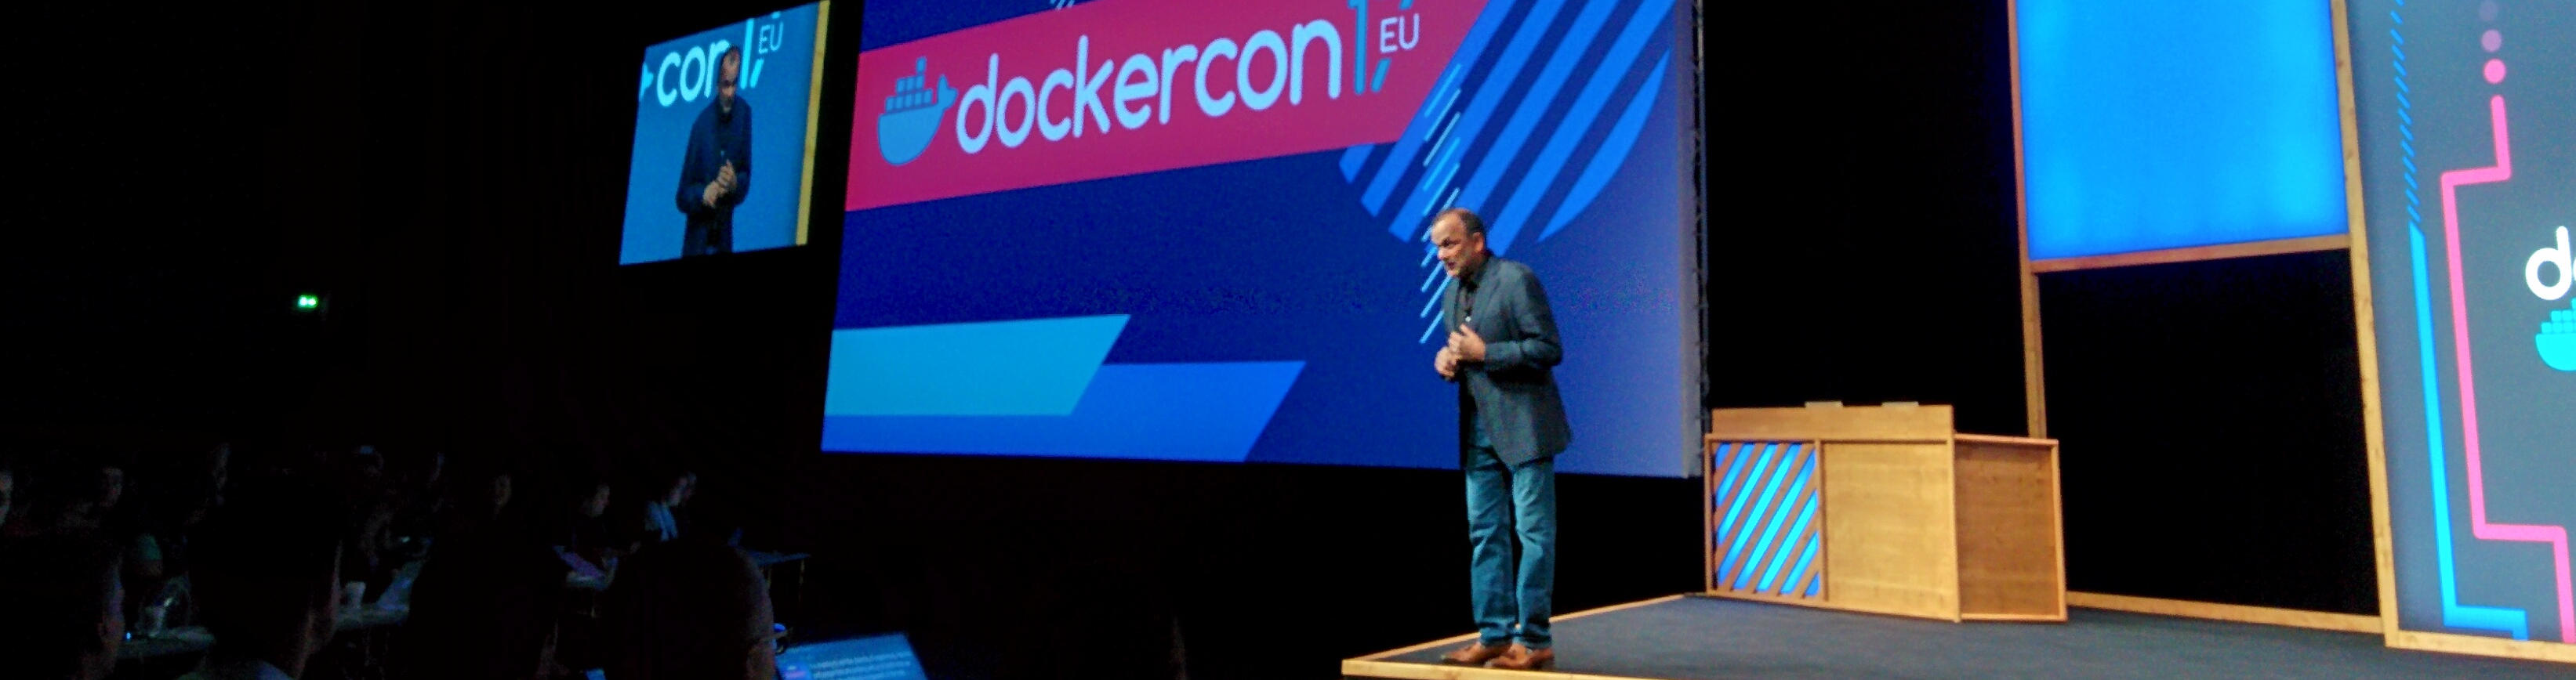 Notes from Dockercon 2017 - Copenhagen